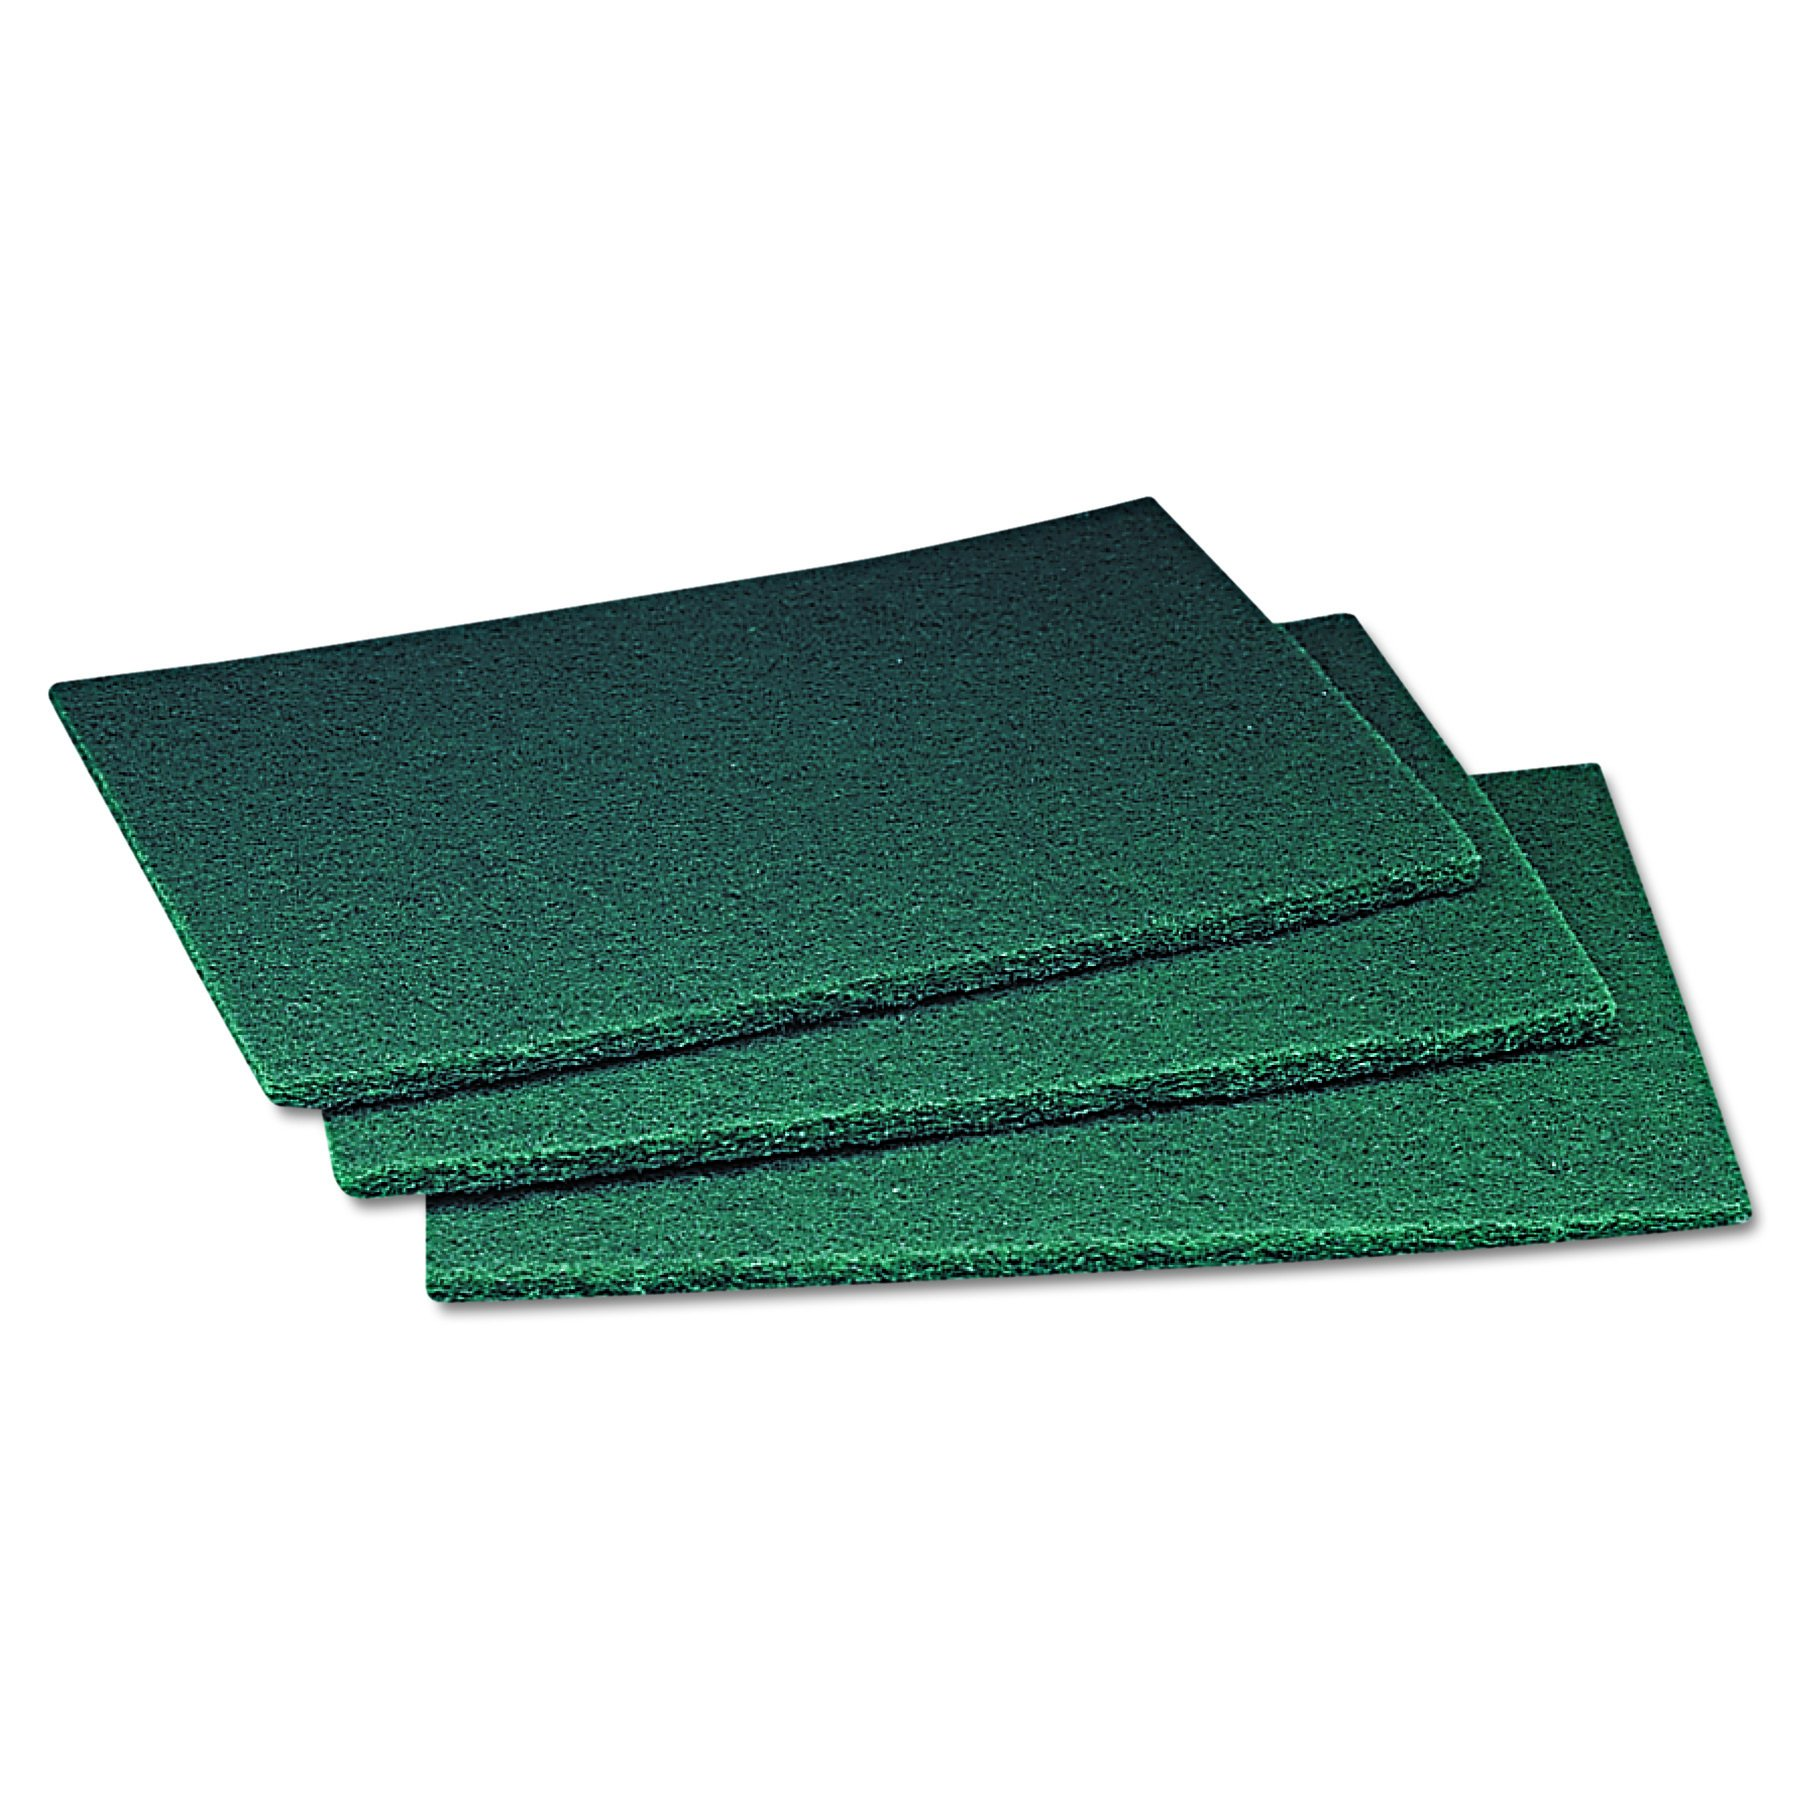 Scotch-Brite PROFESSIONAL 08293 Commercial Scouring Pad, 6 x 9 (Case of 60)